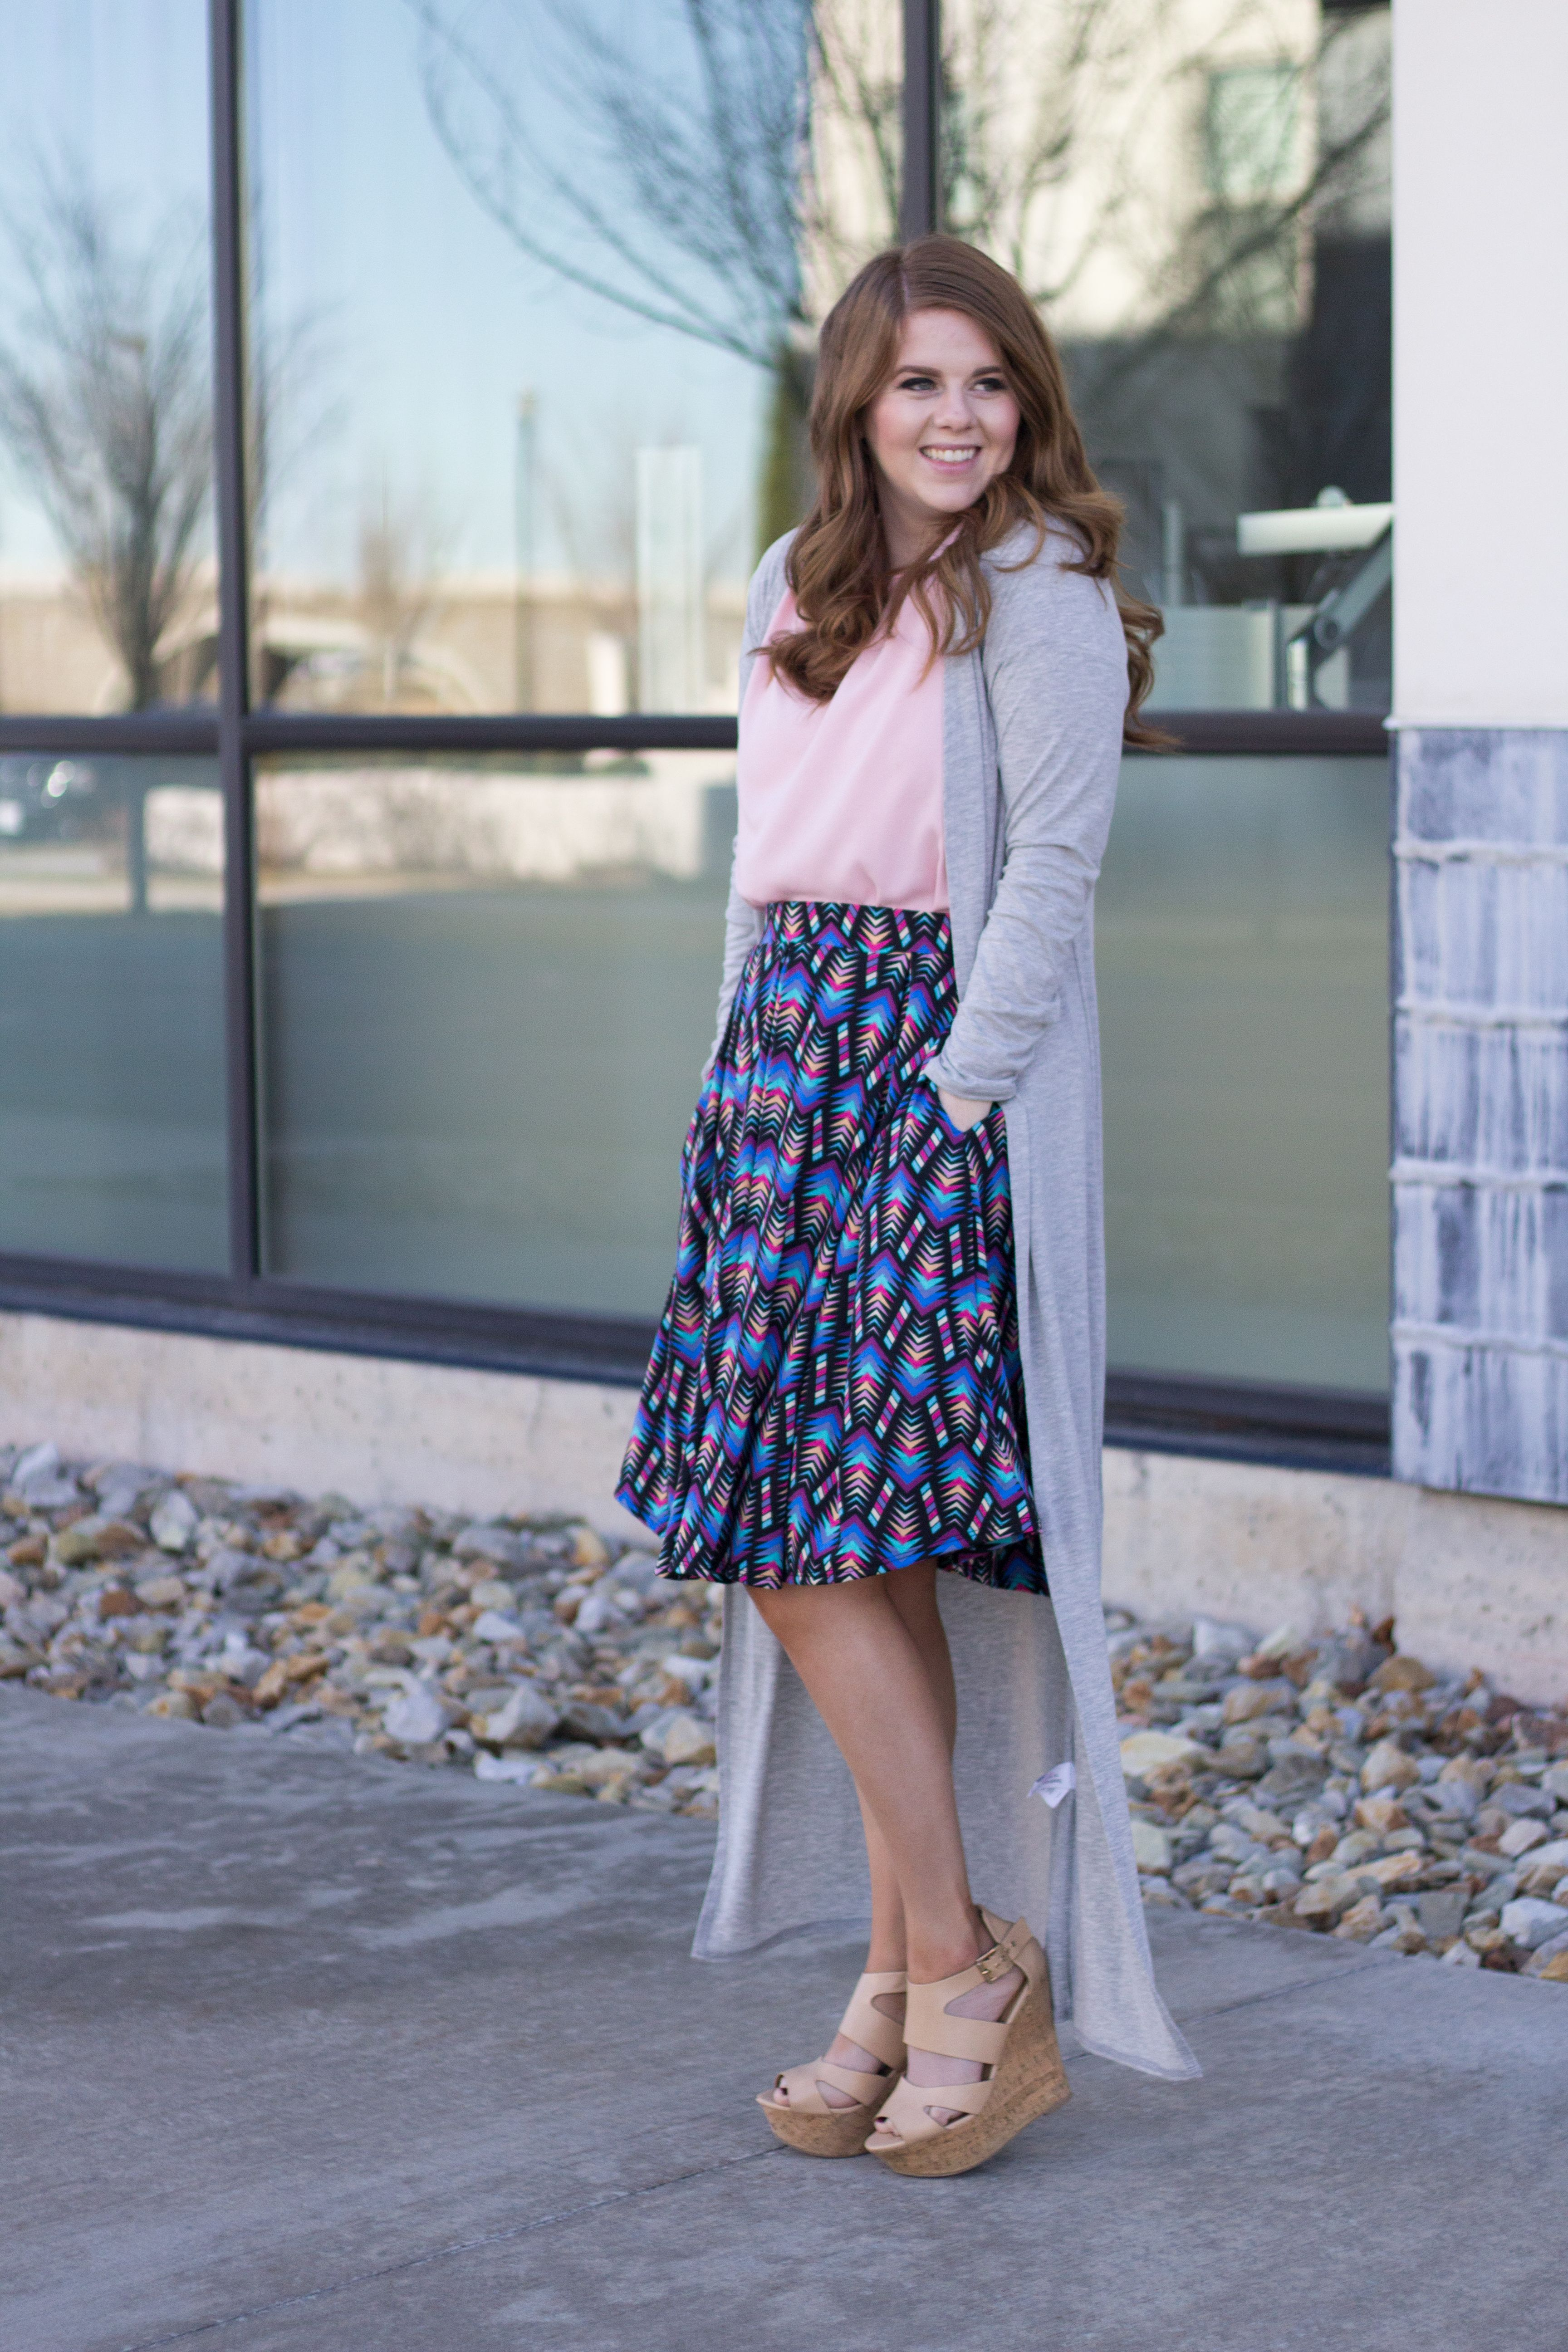 Date night chic with the Lularoe Madison and long grey duster. @lularoe : Modest Summer Outfit